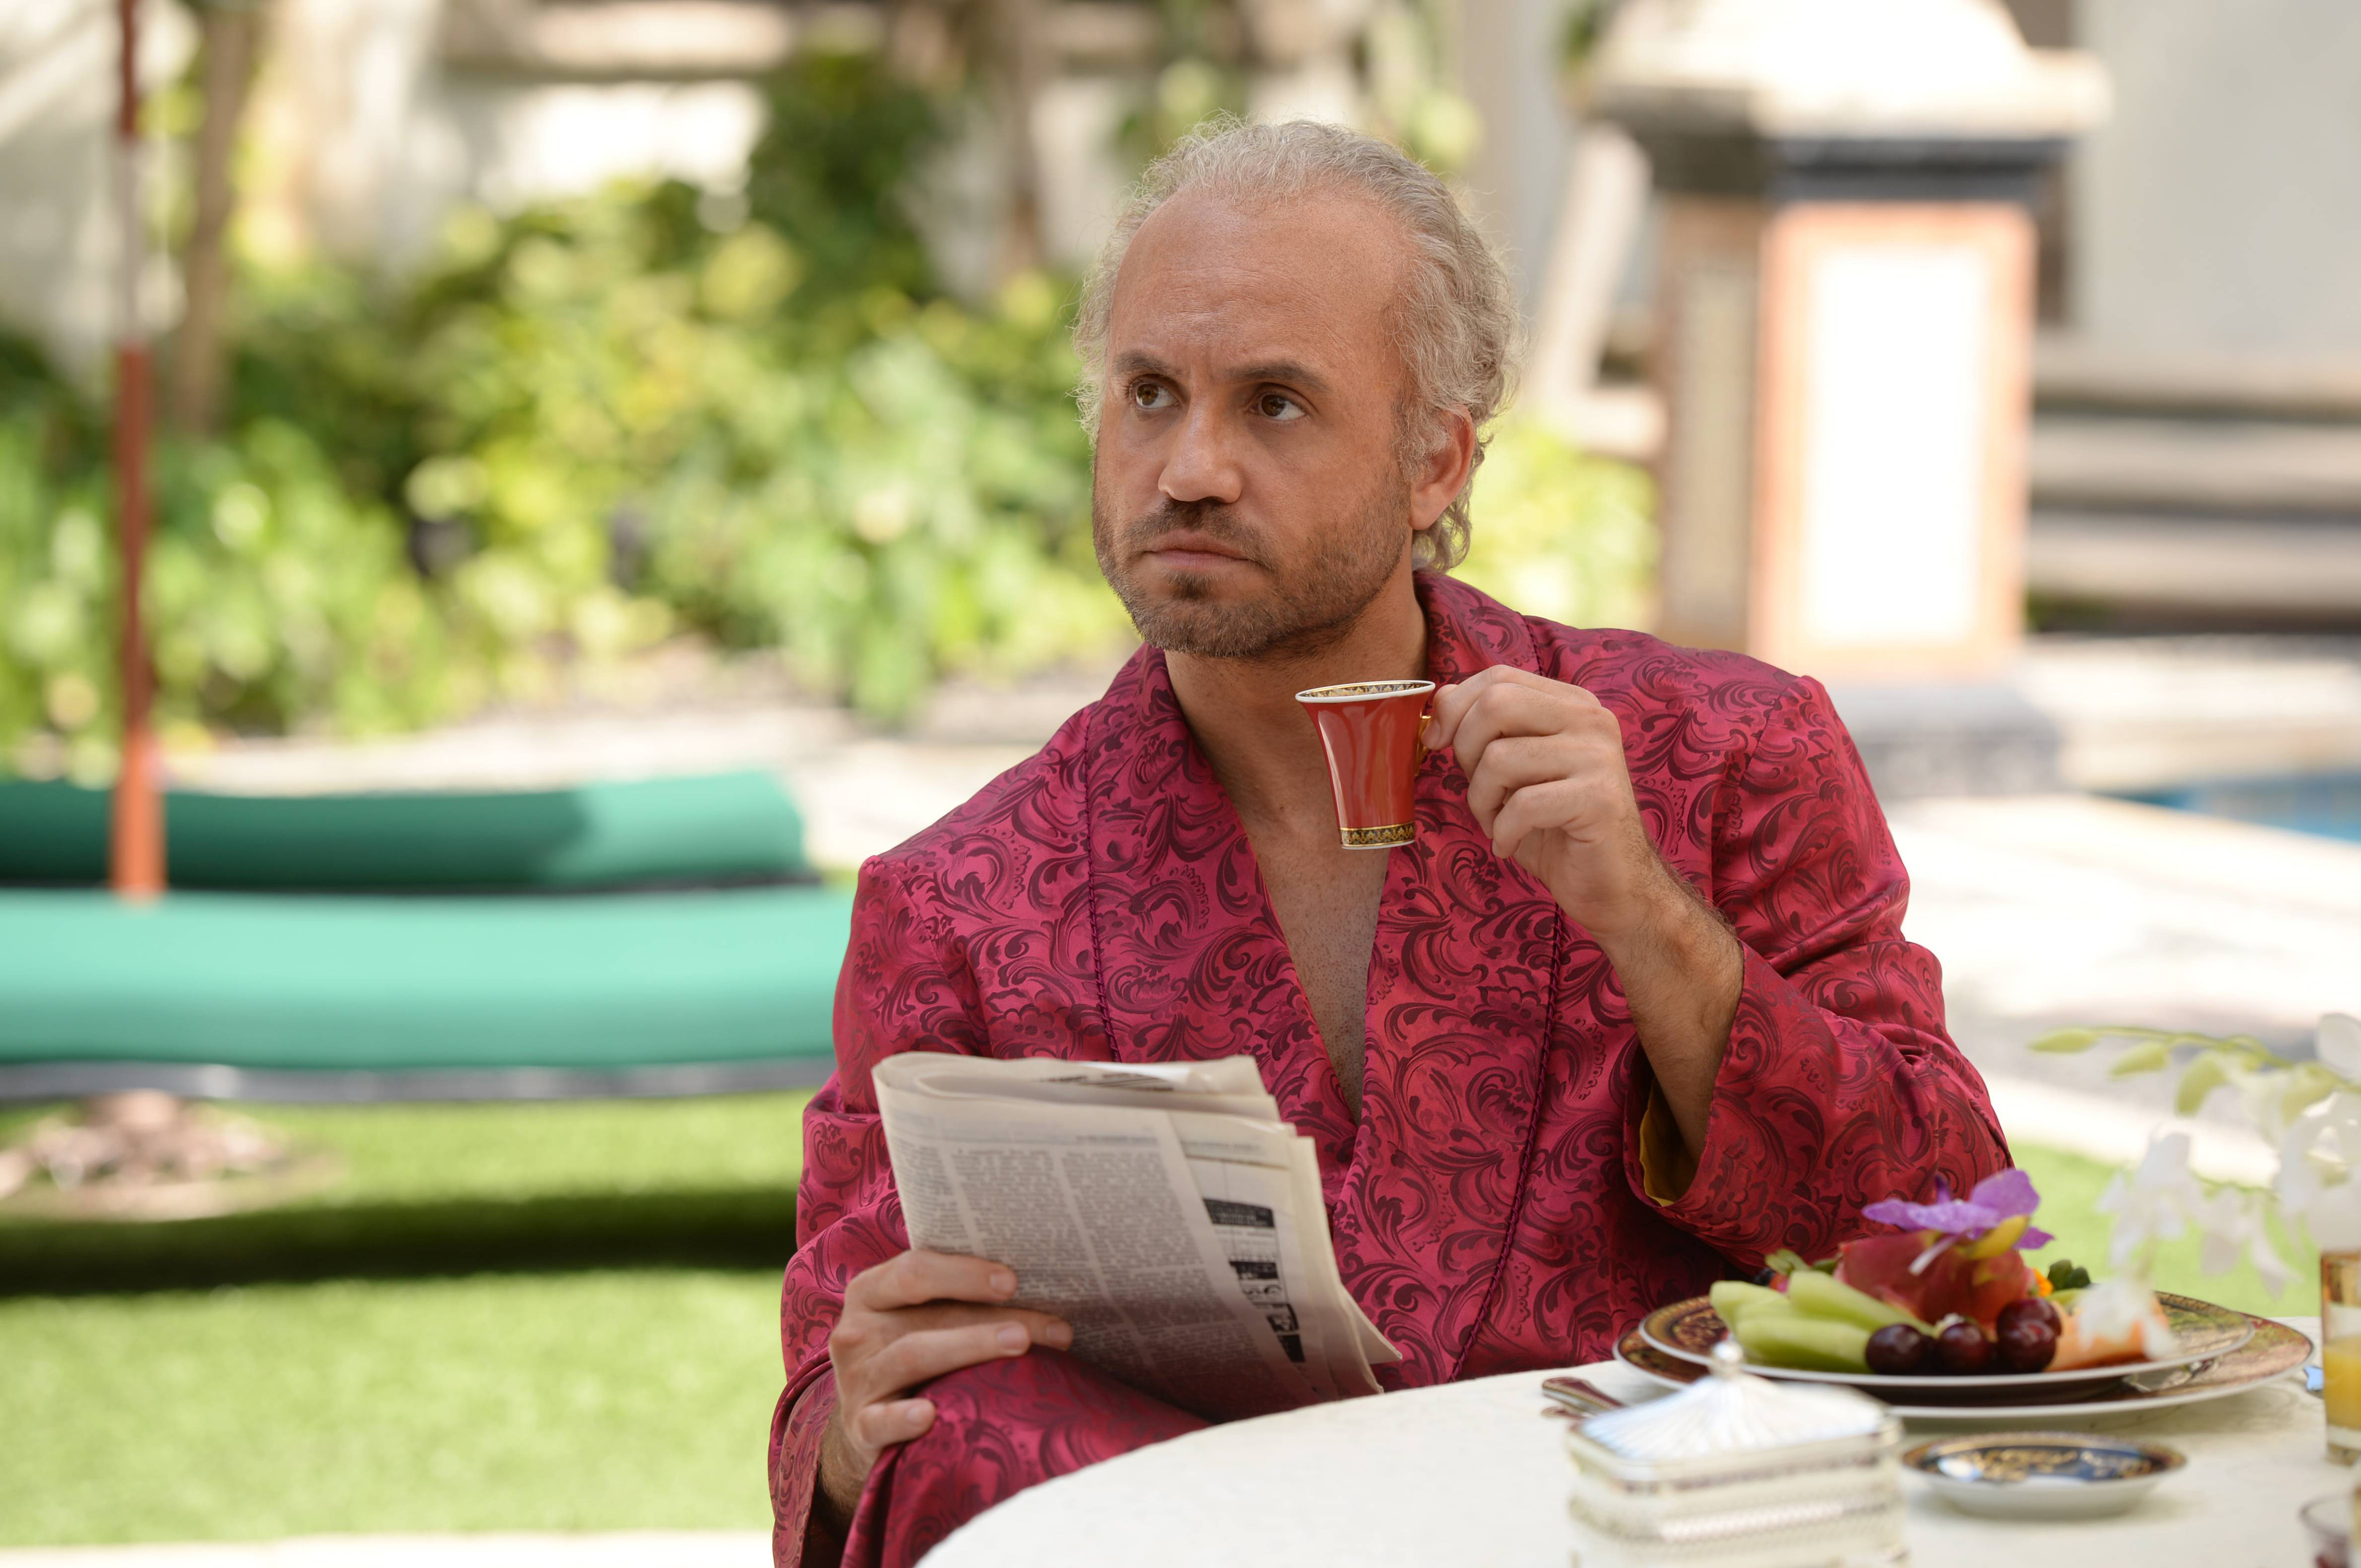 The Assasination of Gianni Versace, Versace Show Cast 2018, Versace Movie Cast, Versace FX Cast, American Crime Story Versace